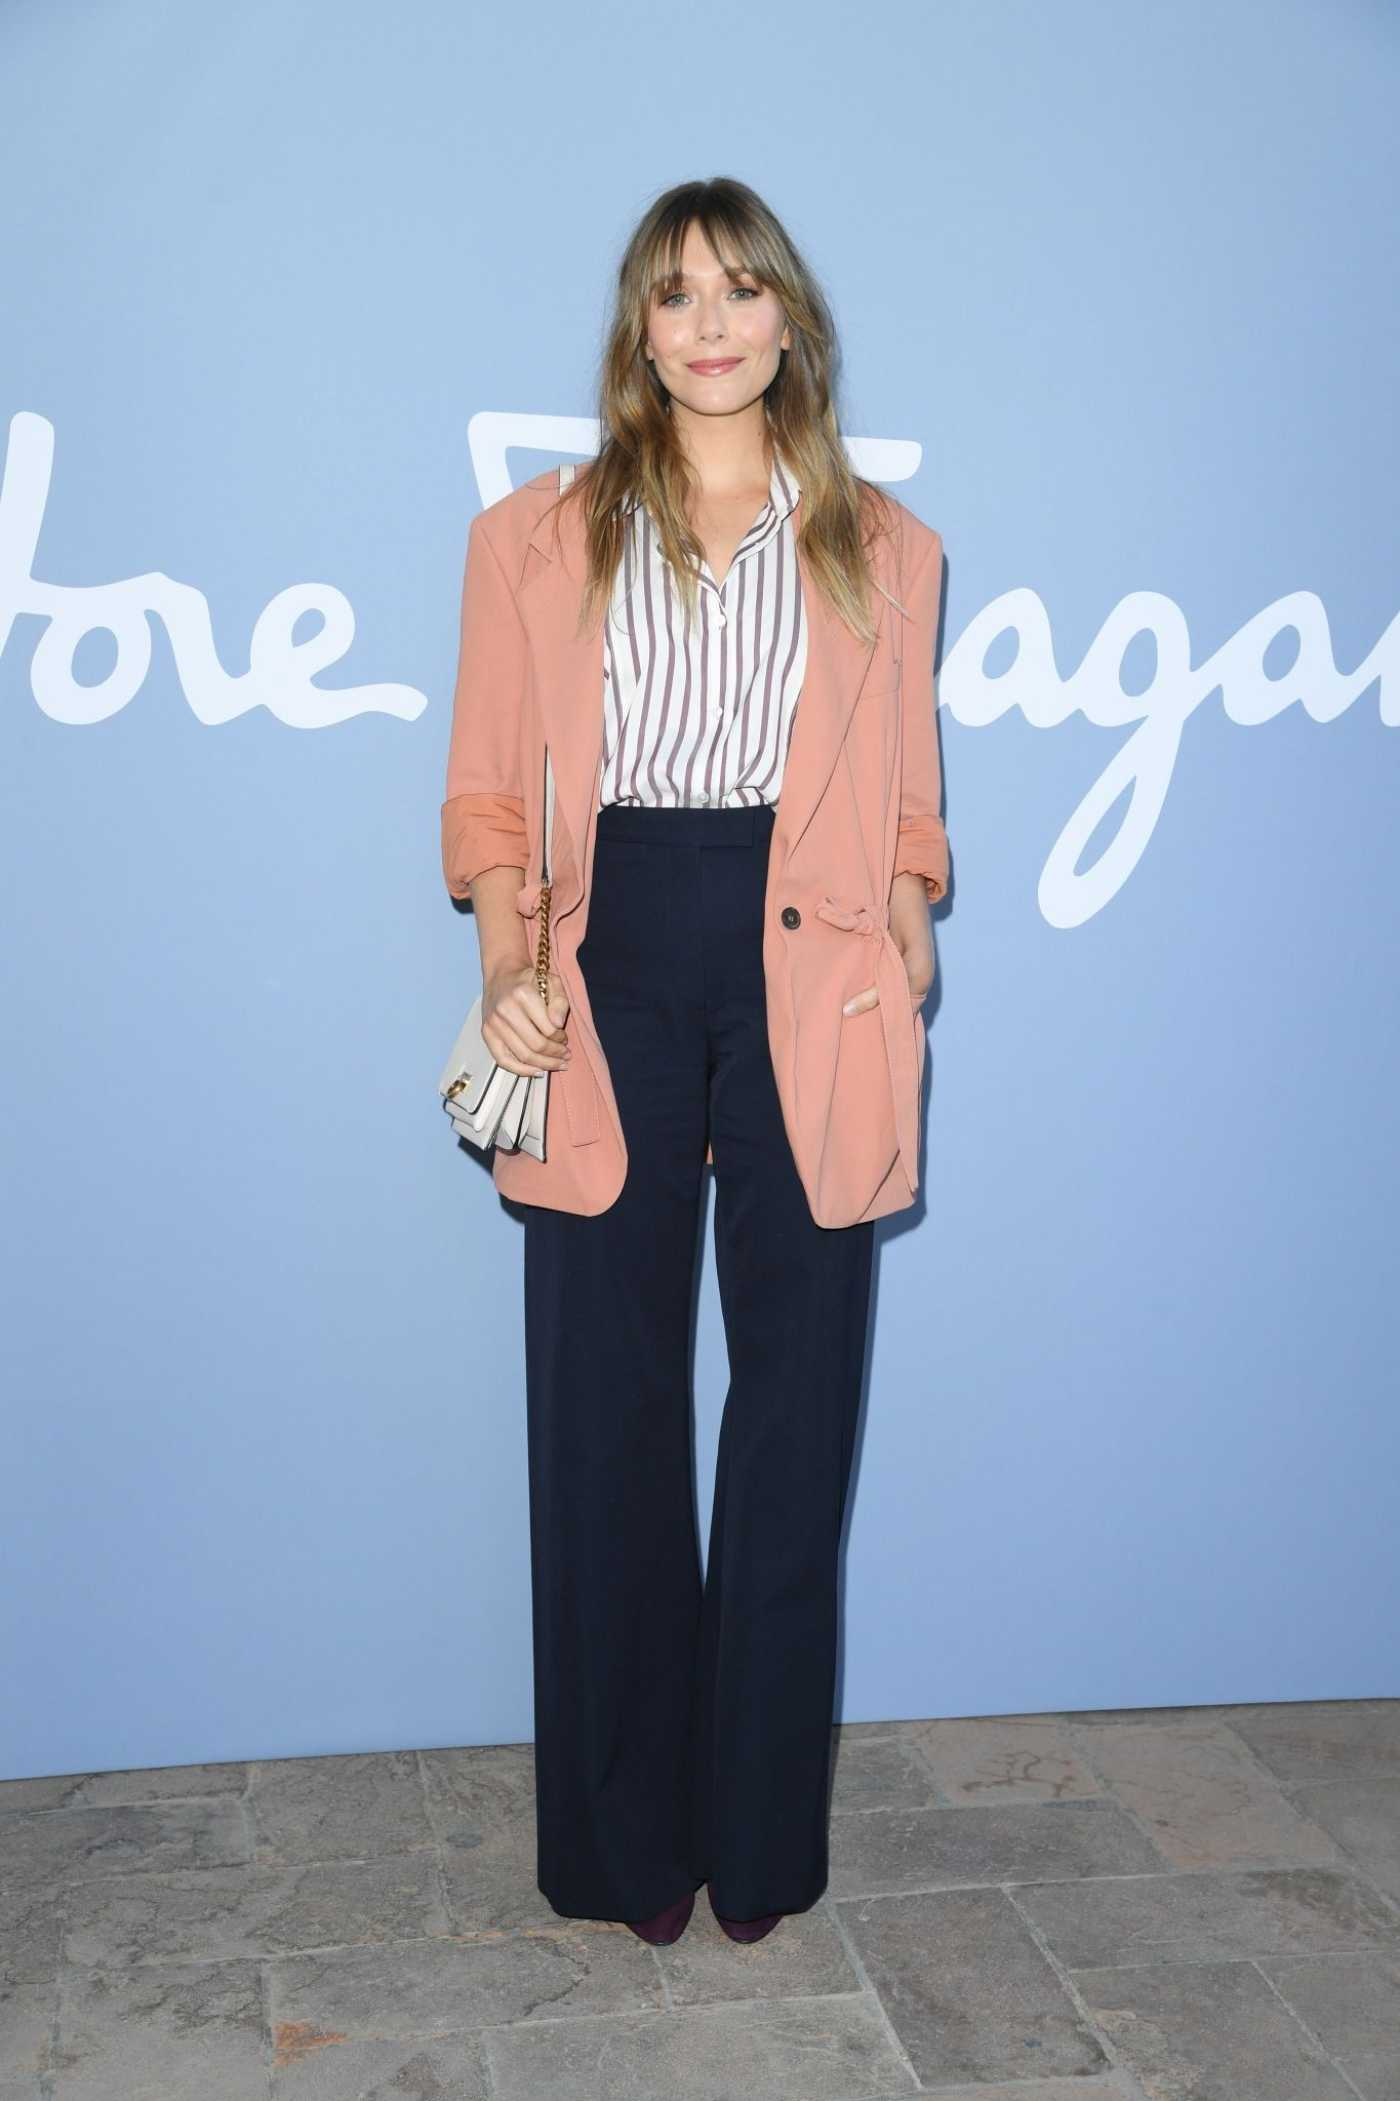 Elizabeth Olsen Attends the Salvatore Ferragamo Show During 2019 Milan Fashion Week in Milan 09/20/2019